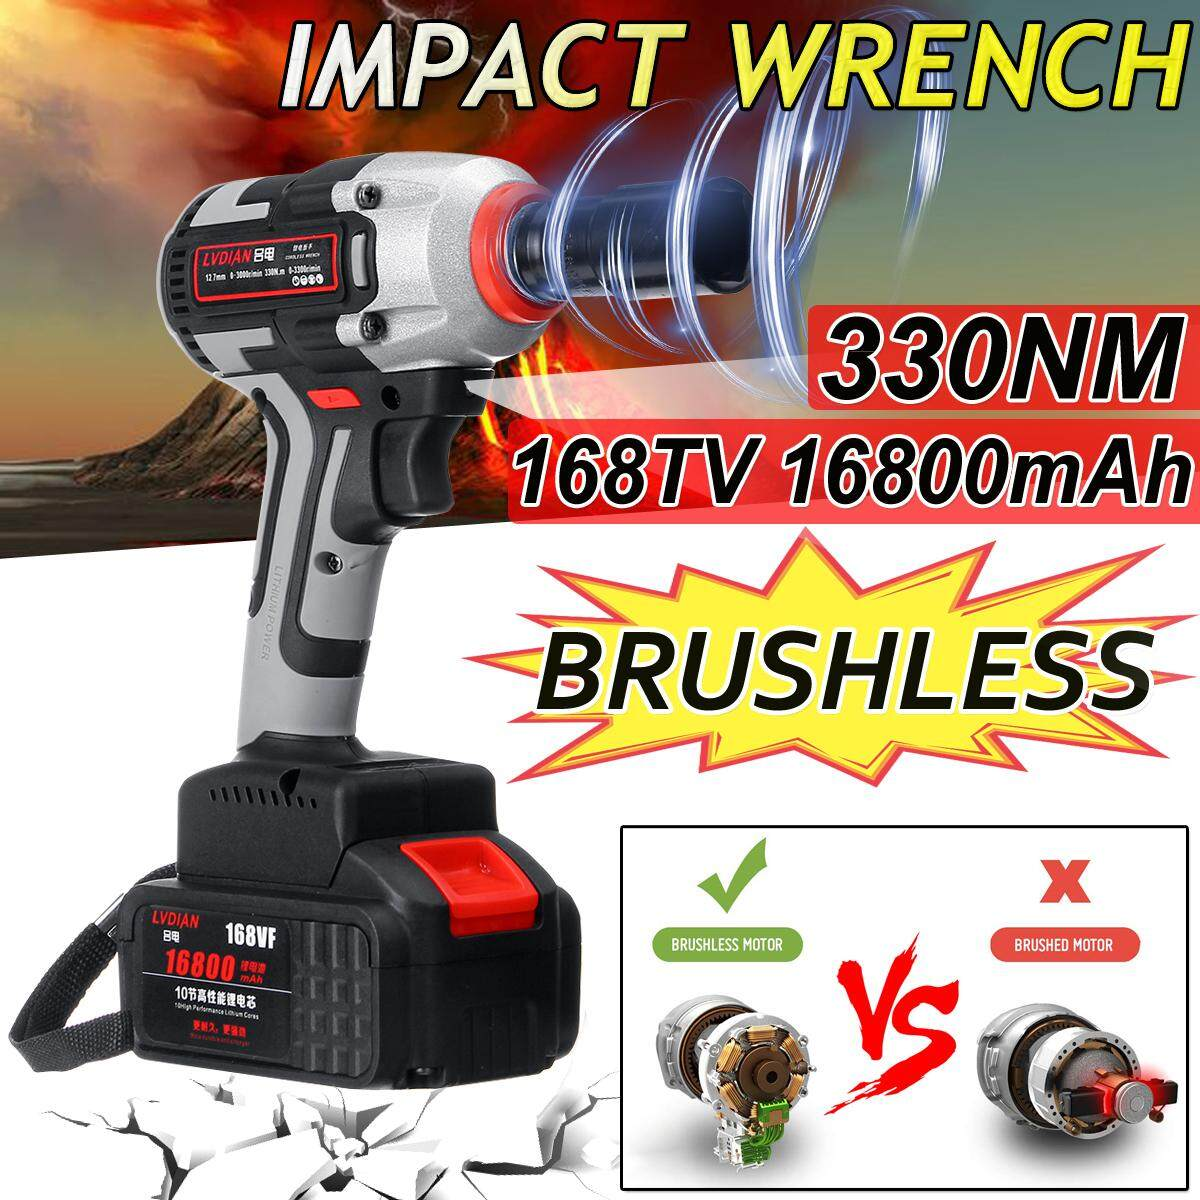 168TV 16800mAh 330NM Impact Wrench Cordless Machine Electric Brushless With Sleeve